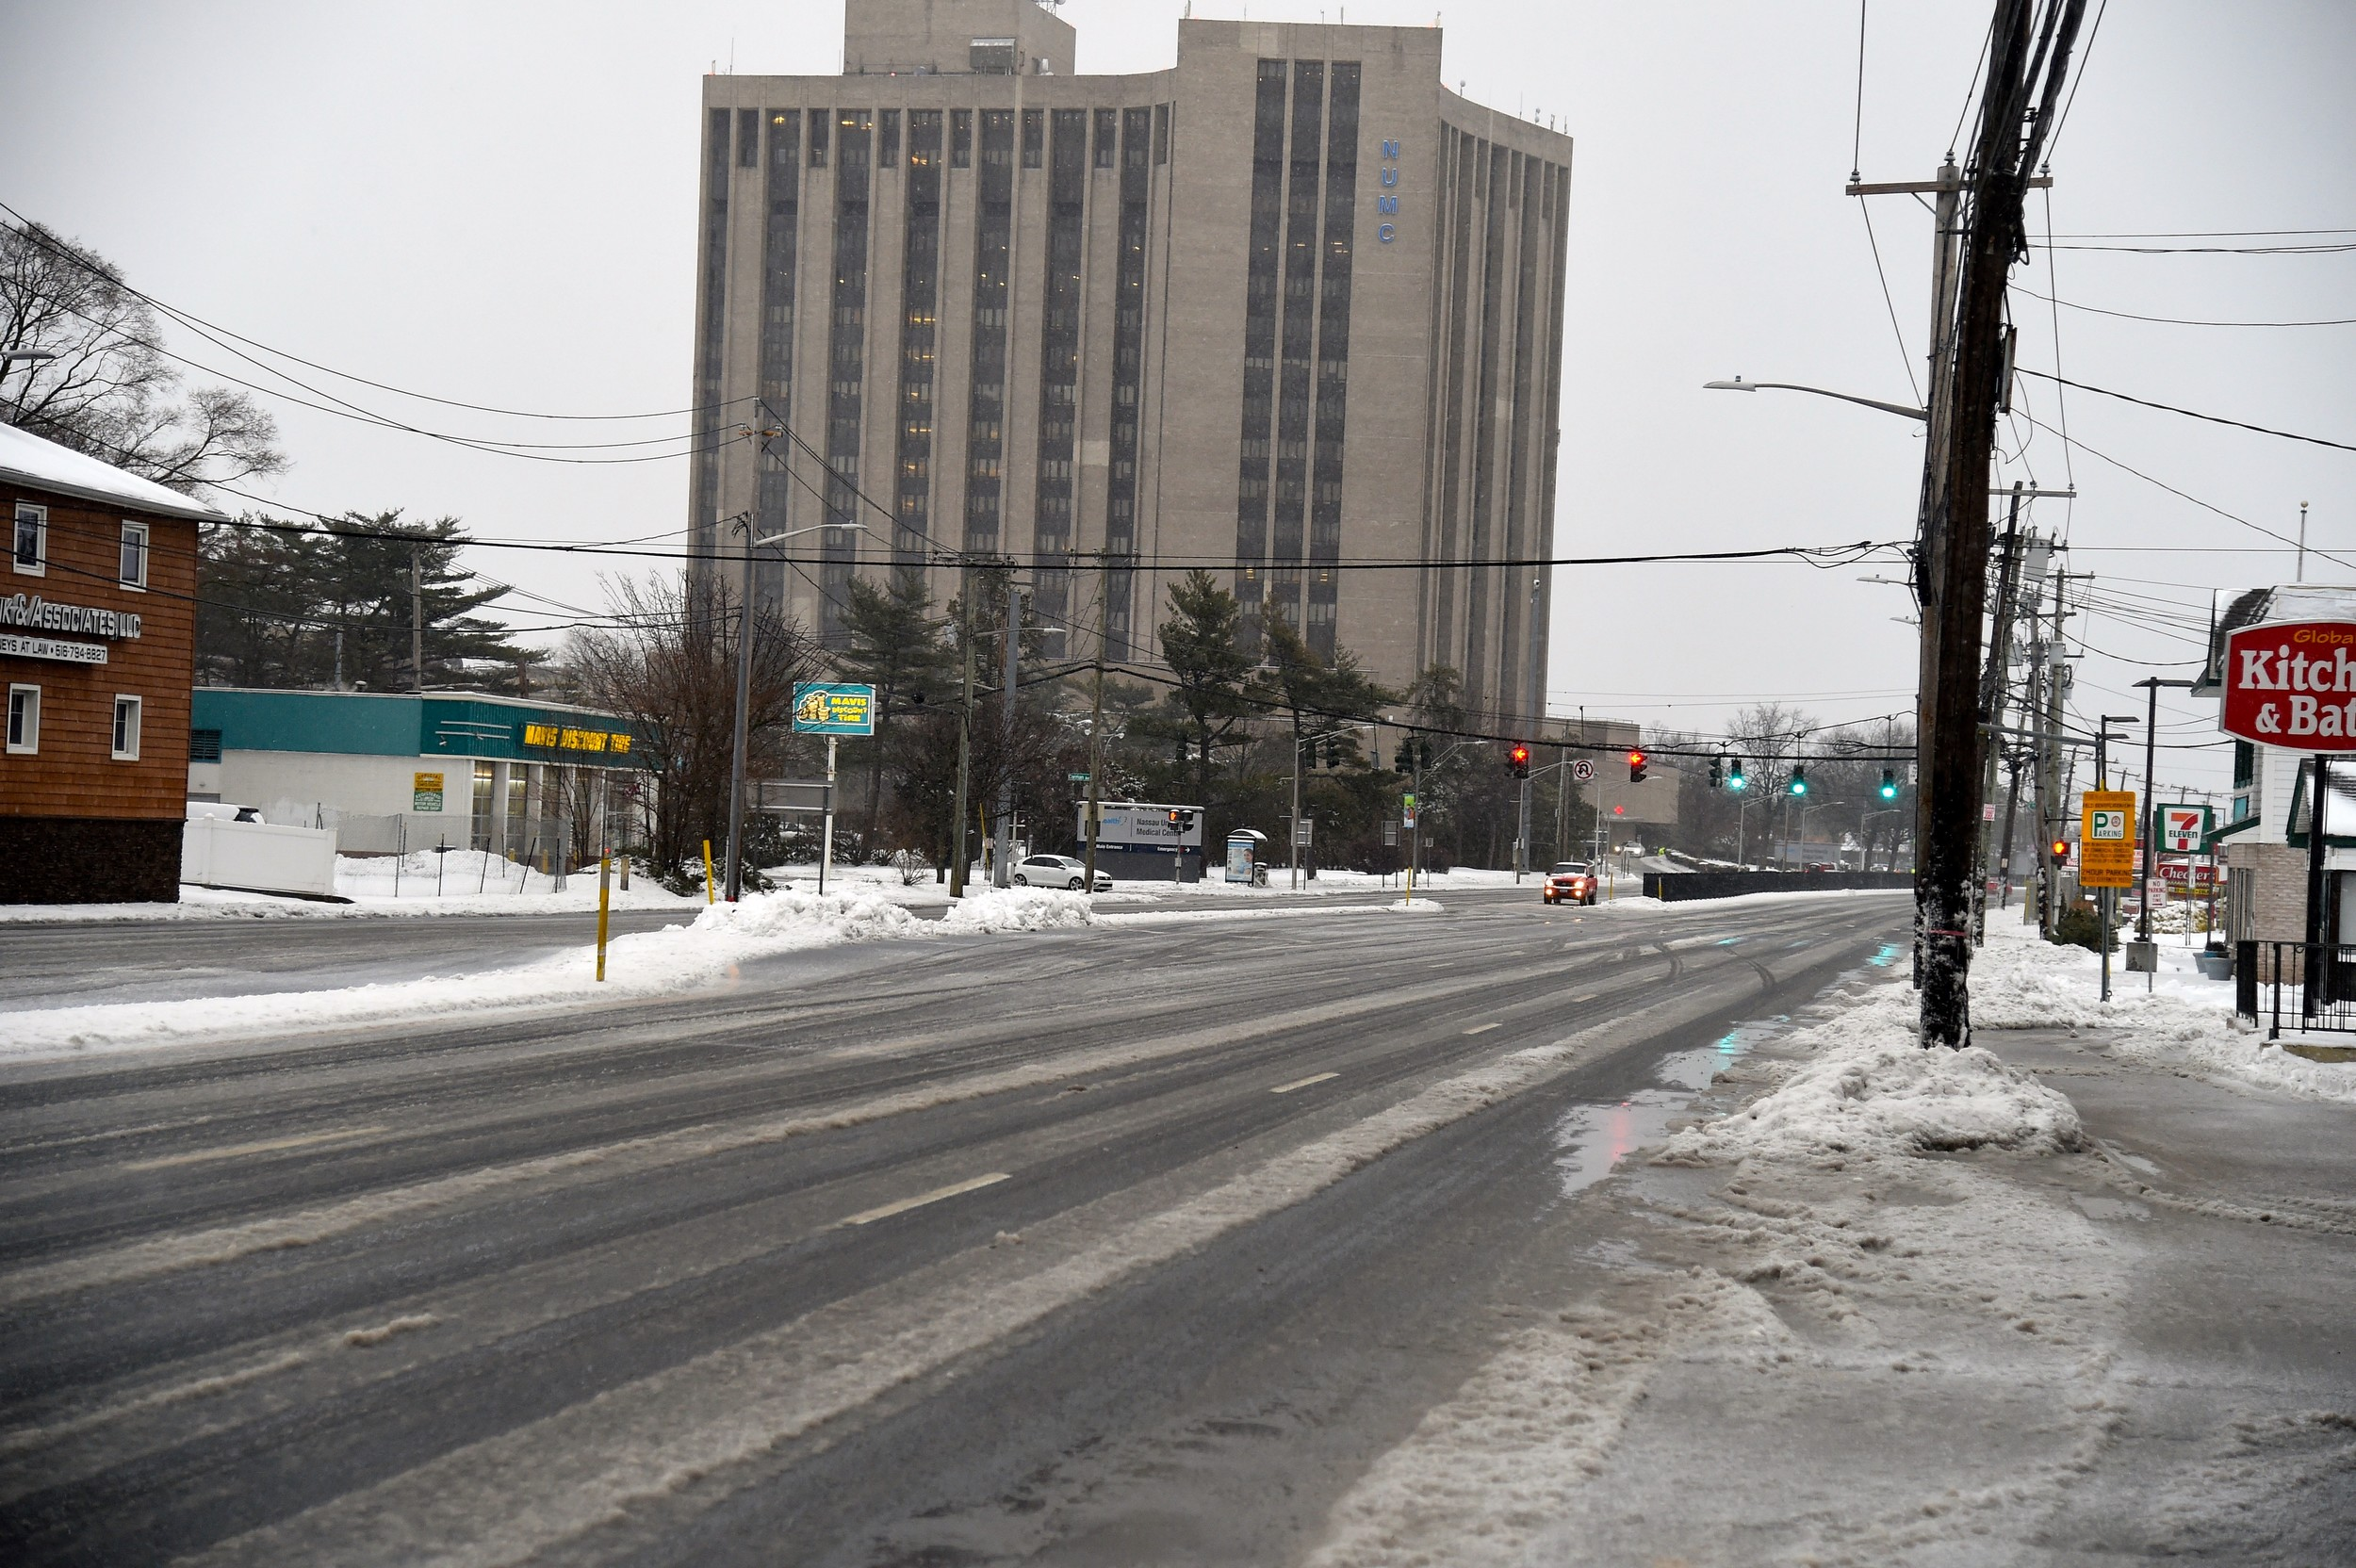 Hempstead Turnpike in East Meadow was virtually empty this morning. The Nassau University Medical Center prepped for the anticipated snowfall.